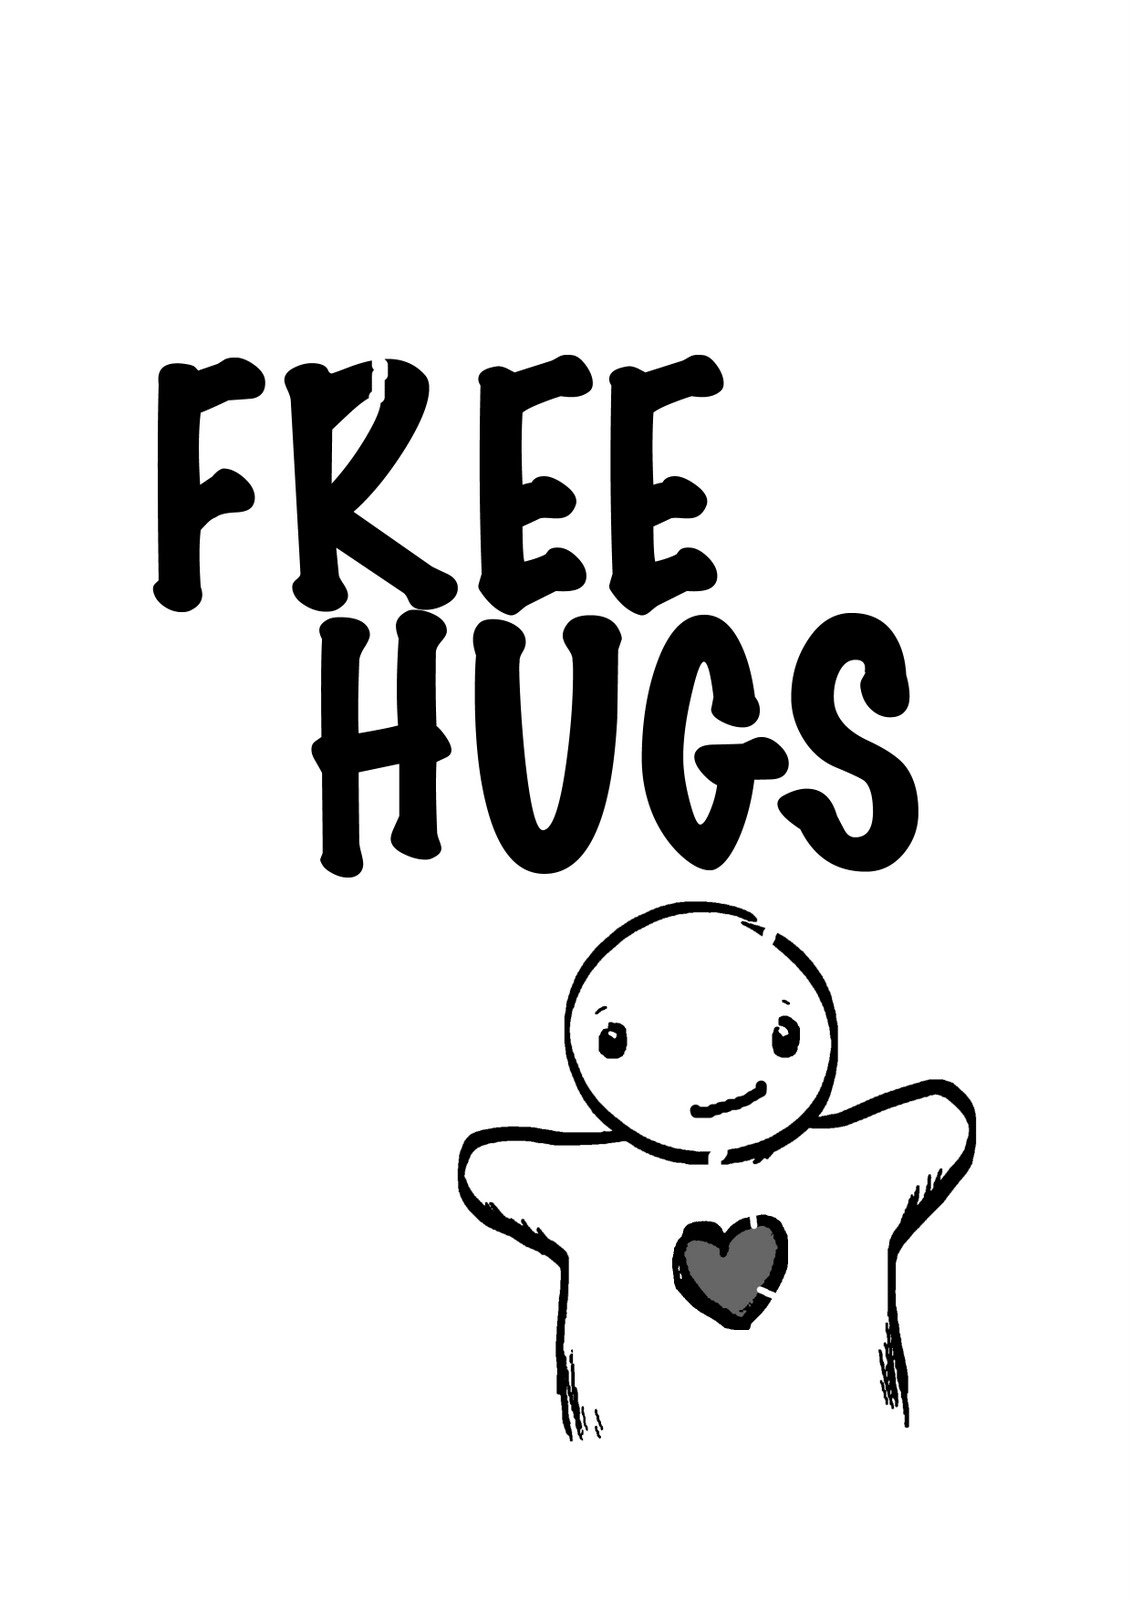 http://rzntime.ru/wp-content/gallery/all/free-hugs.jpg